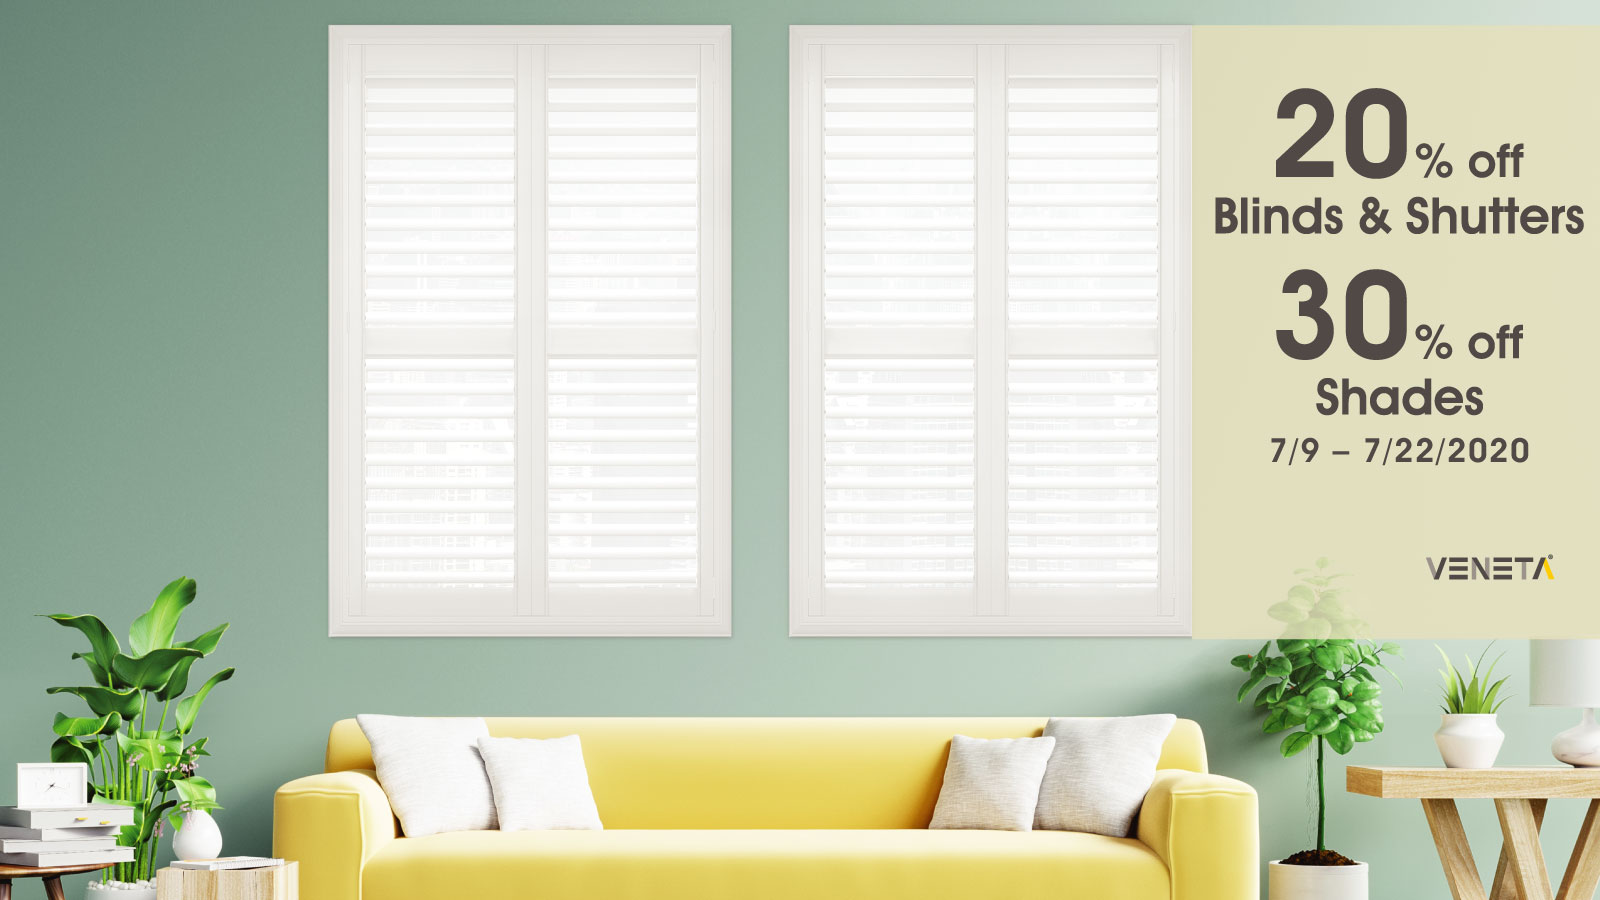 20 percent off Custom Shutters and Blinds, 30 percent off Custom Shades from Veneta Window Fashions at Home Depot! Only from July 9-22, 2020!